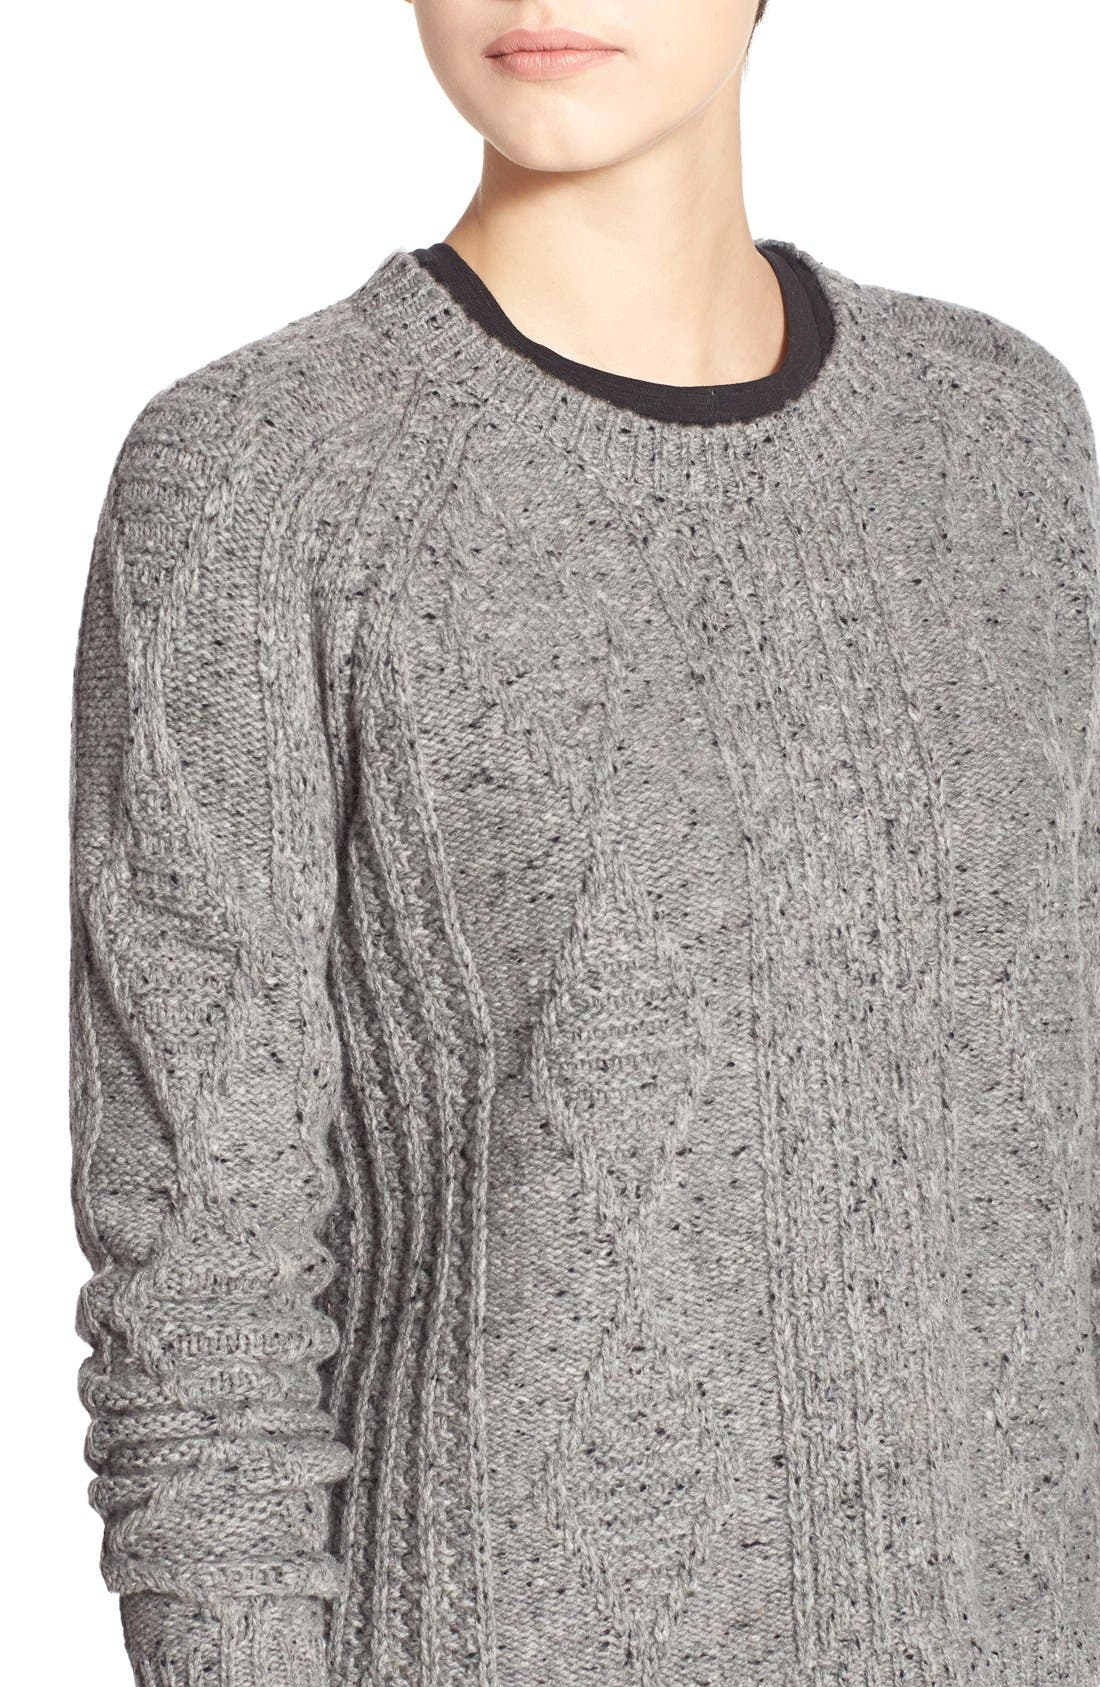 MADEWELL,                             'Palisade' Back Zip Sweater,                             Alternate thumbnail 5, color,                             020